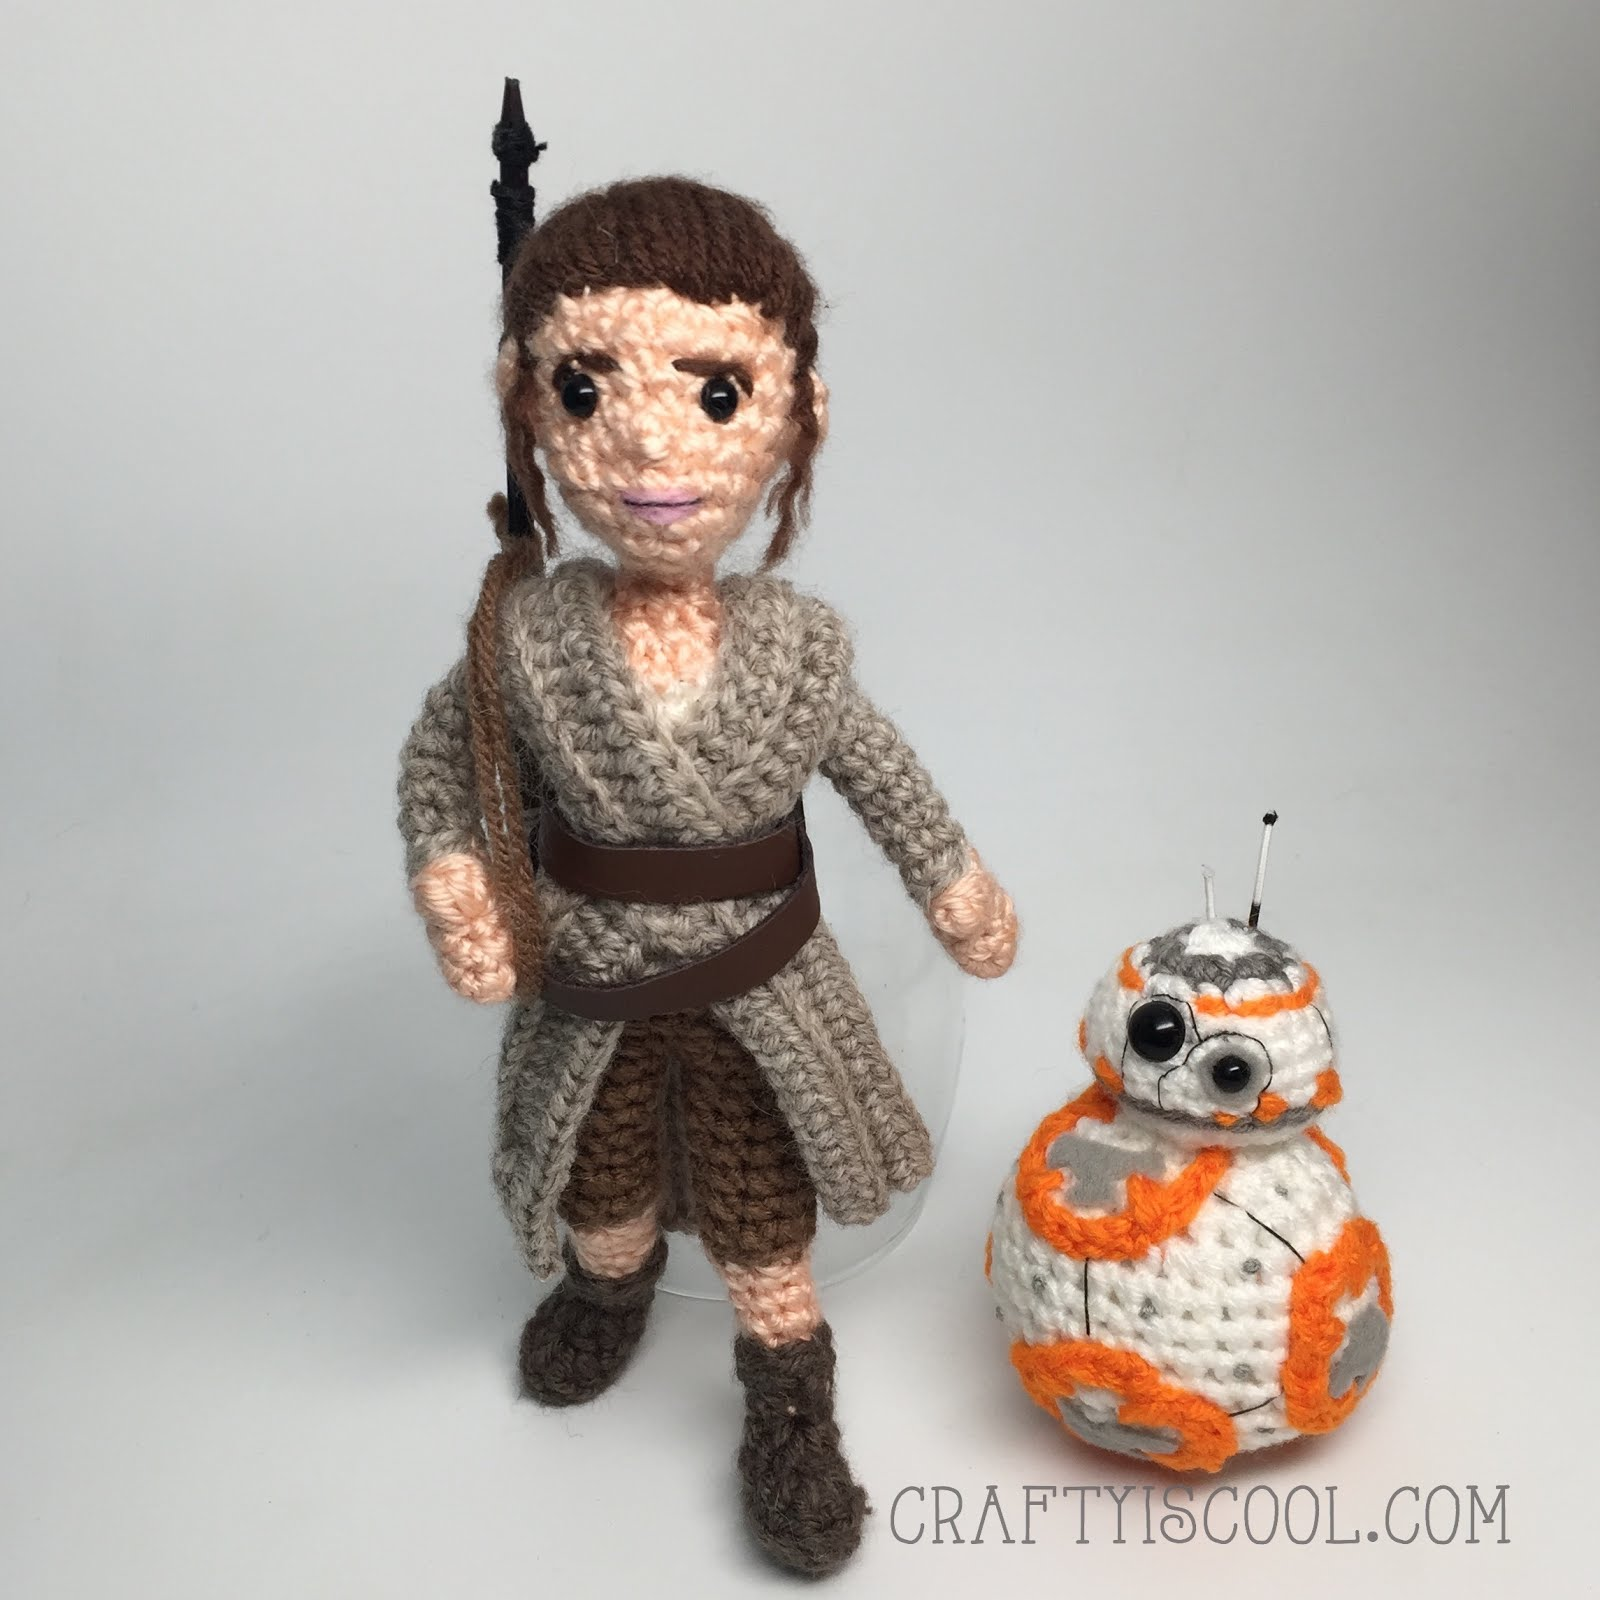 Free Star Wars Crochet Amigurumi Patterns : CRAFTYisCOOL: Happy New Year with BB-8! FREE pattern